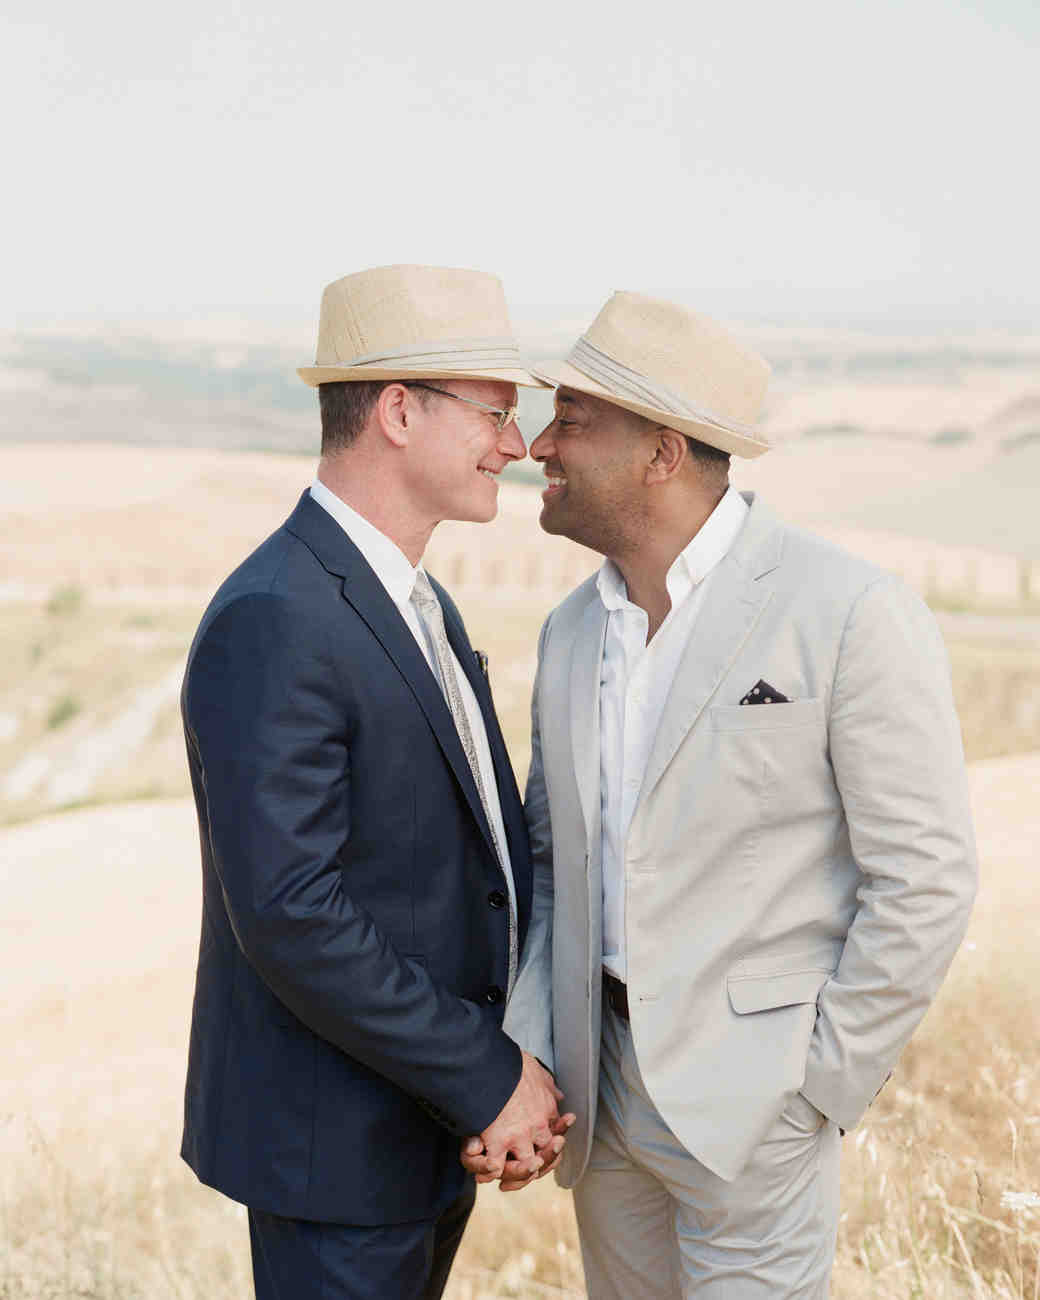 dennis-bryan-wedding-italy-couple-grooms-016-0250-s112633.jpg